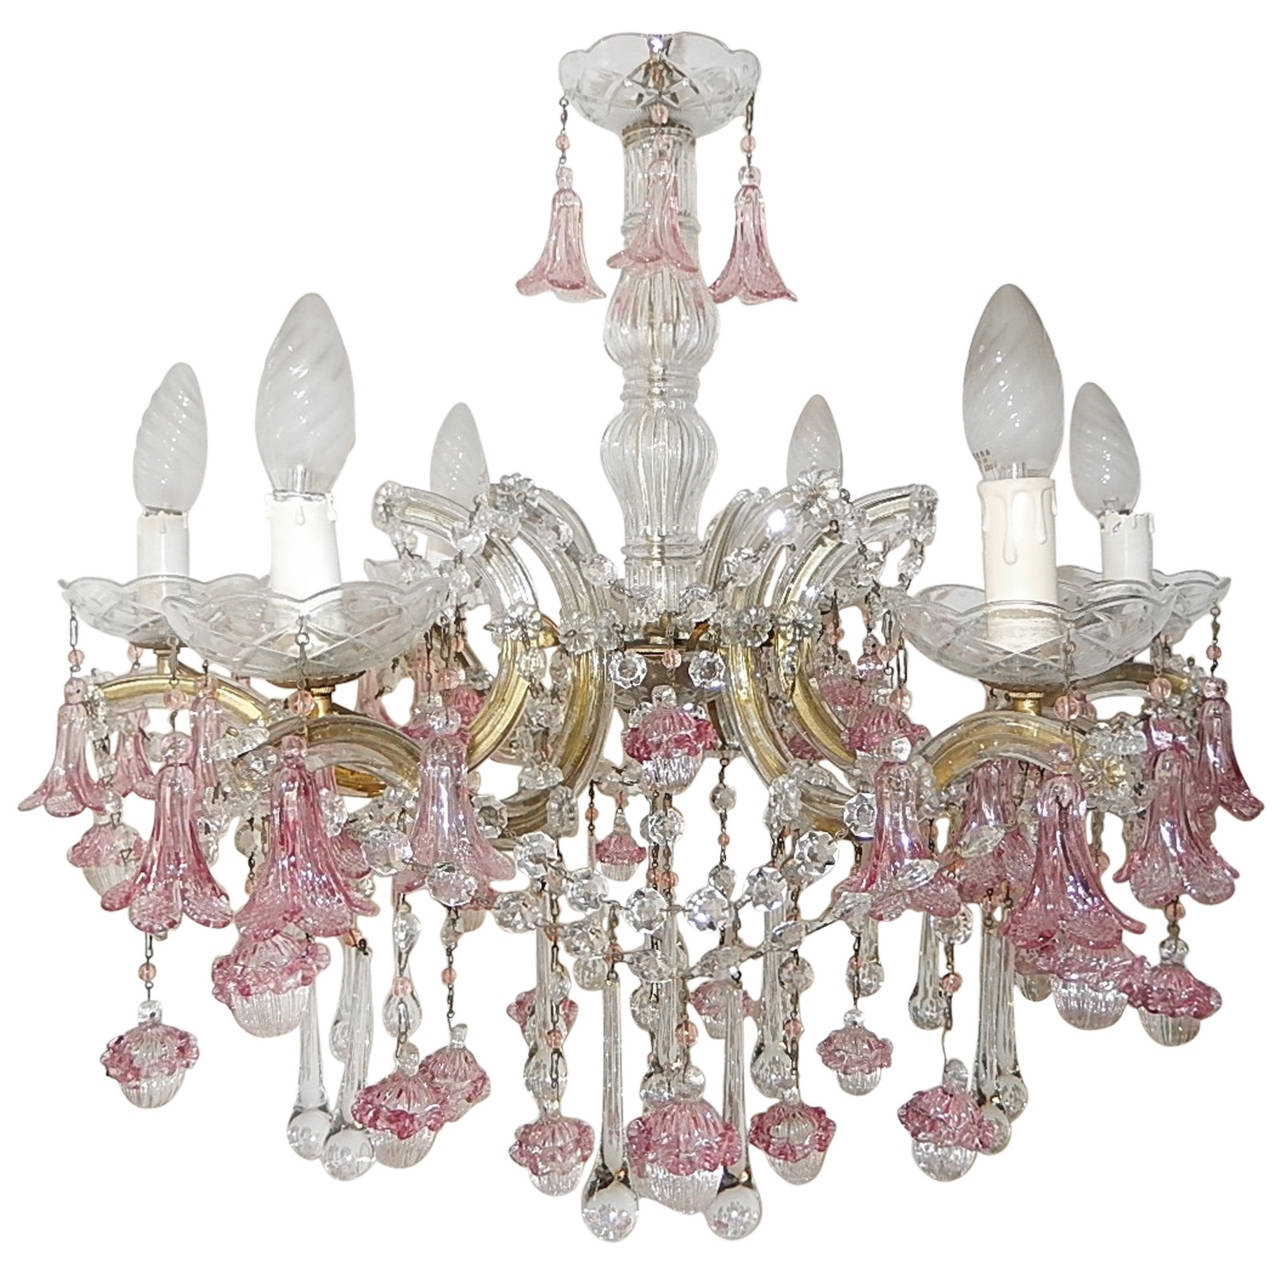 12 collection of fuschia chandelier 1920 french fuchsia murano flowers and balls chandelier at 1stdibs regarding fuschia chandelier 1 aloadofball